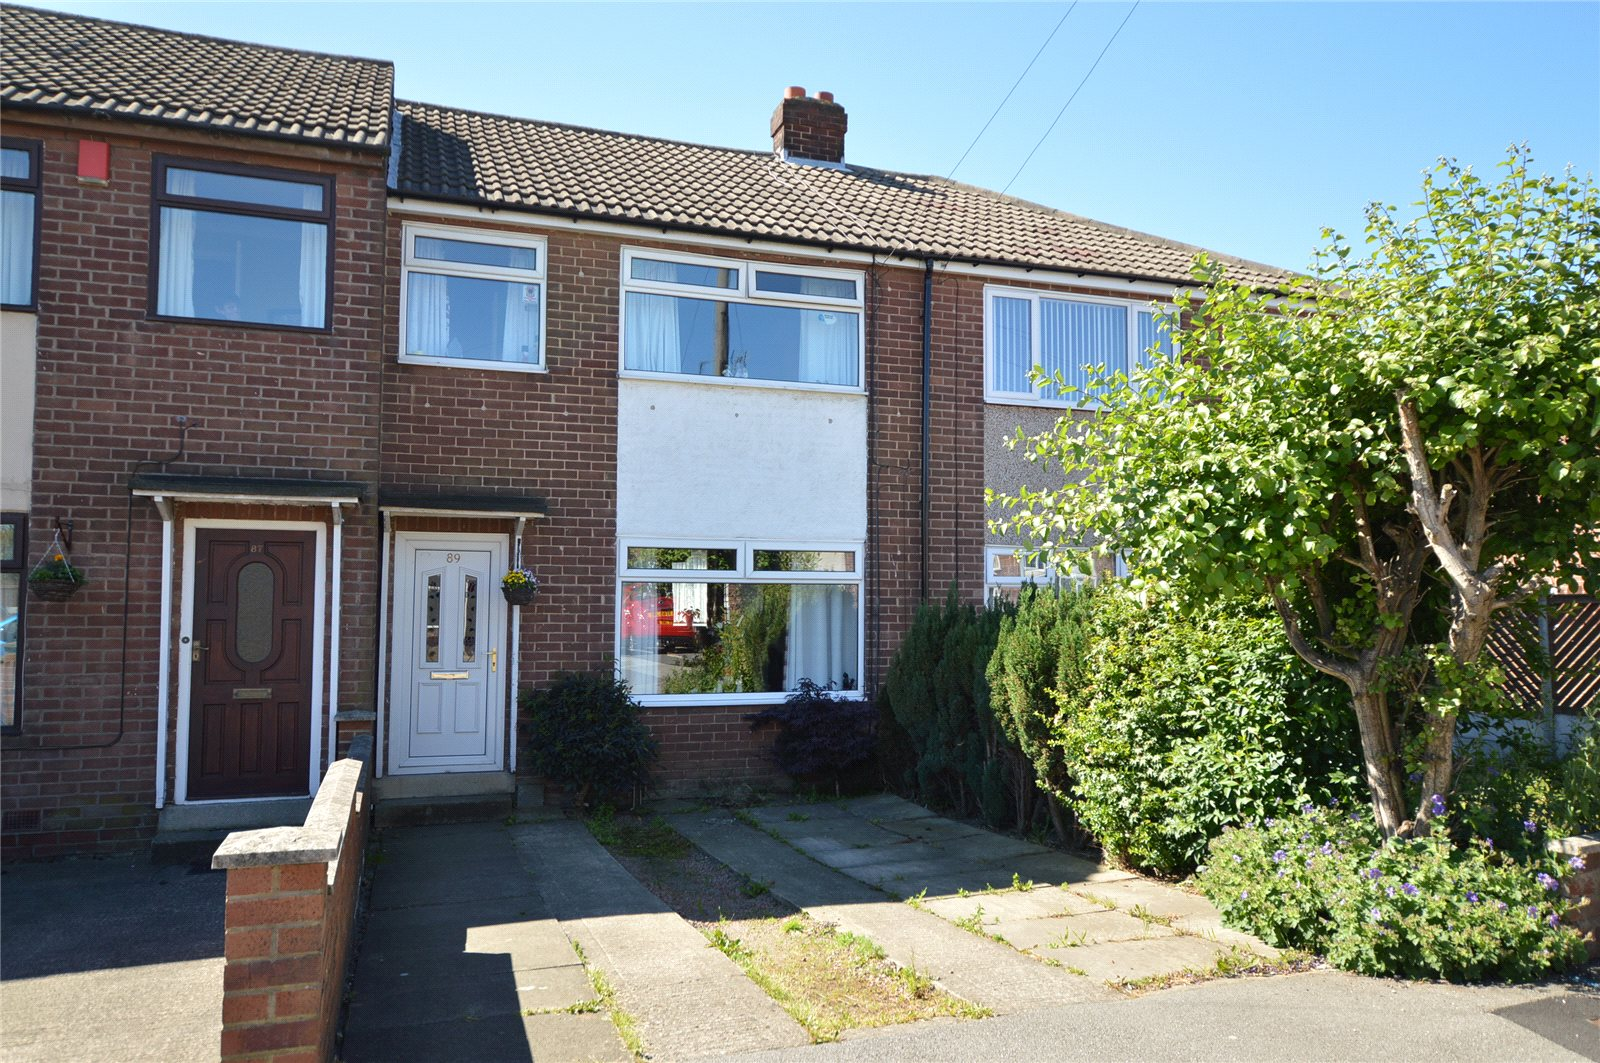 property for sale in  Morley, exterior of red brick terraced house